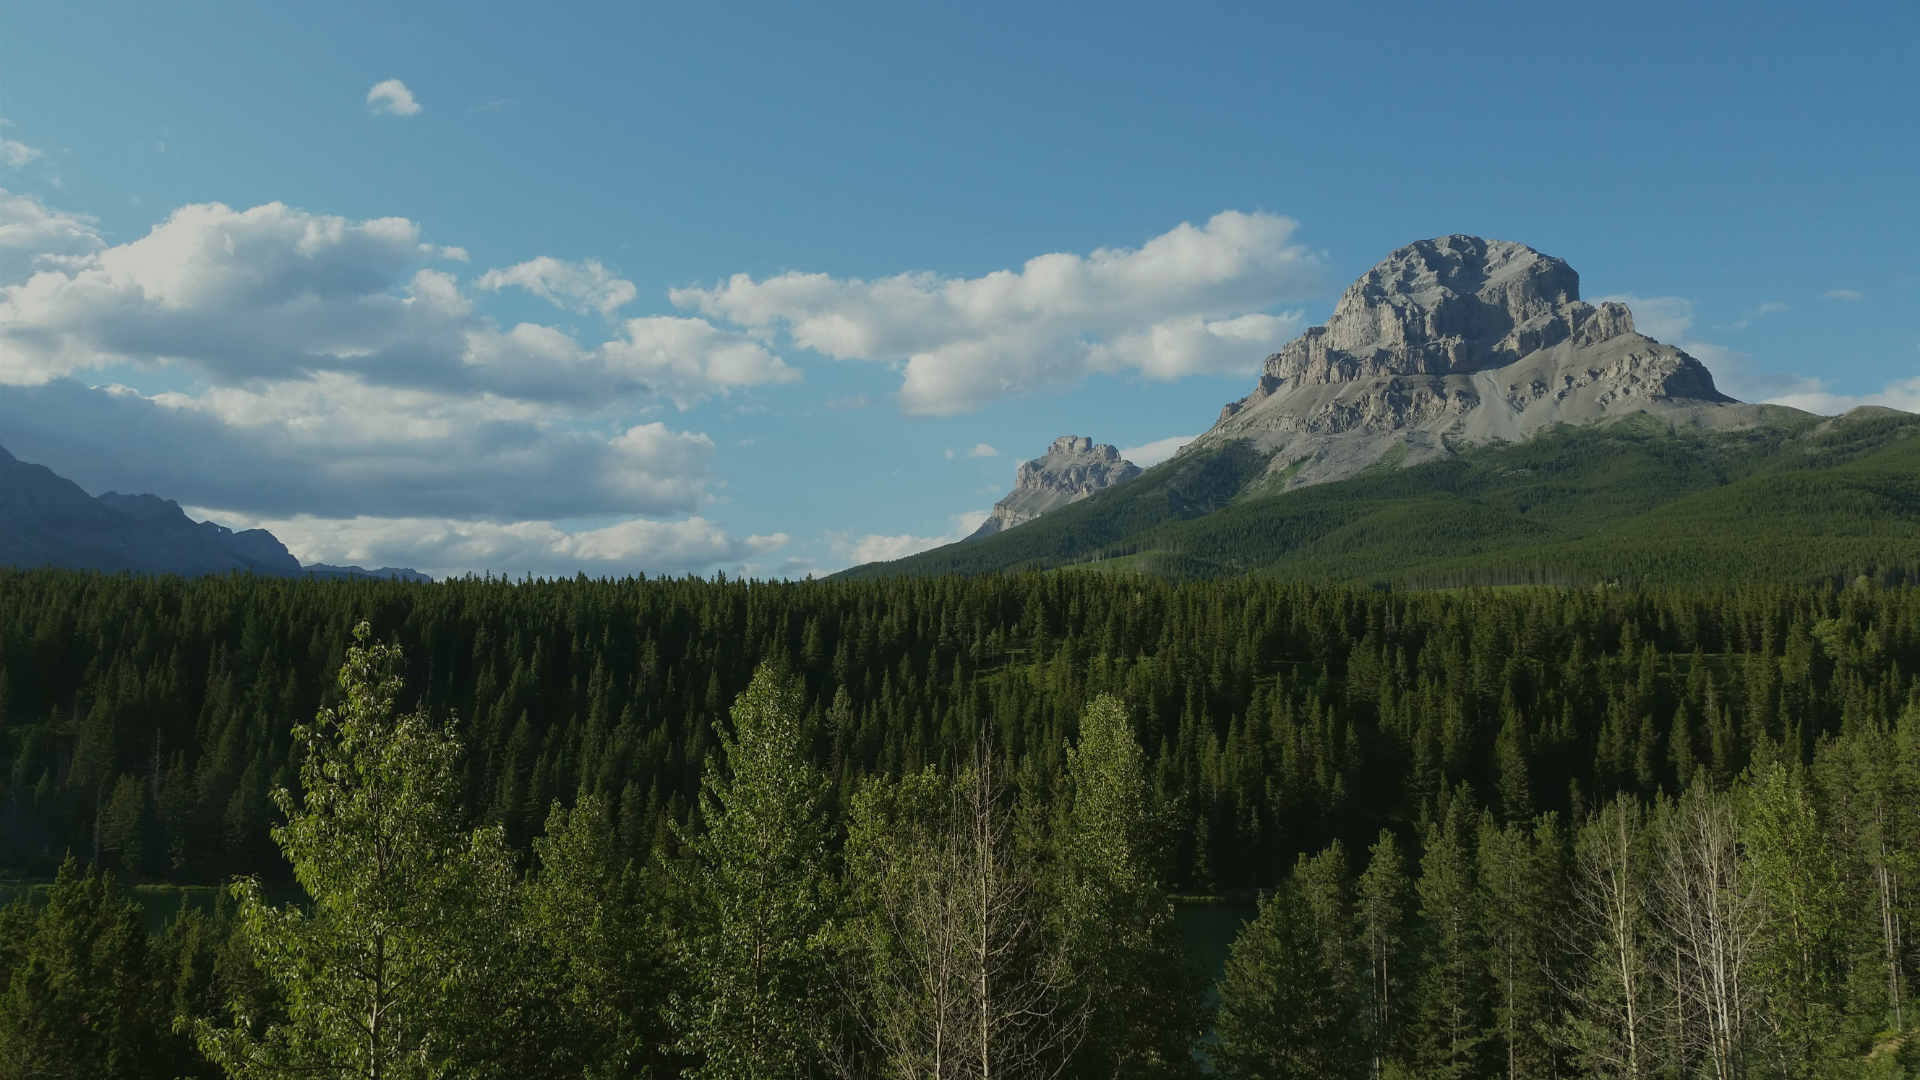 RVezy Guest Writers: Irwan Marroc's Guide to Chinook Provincial, Alberta